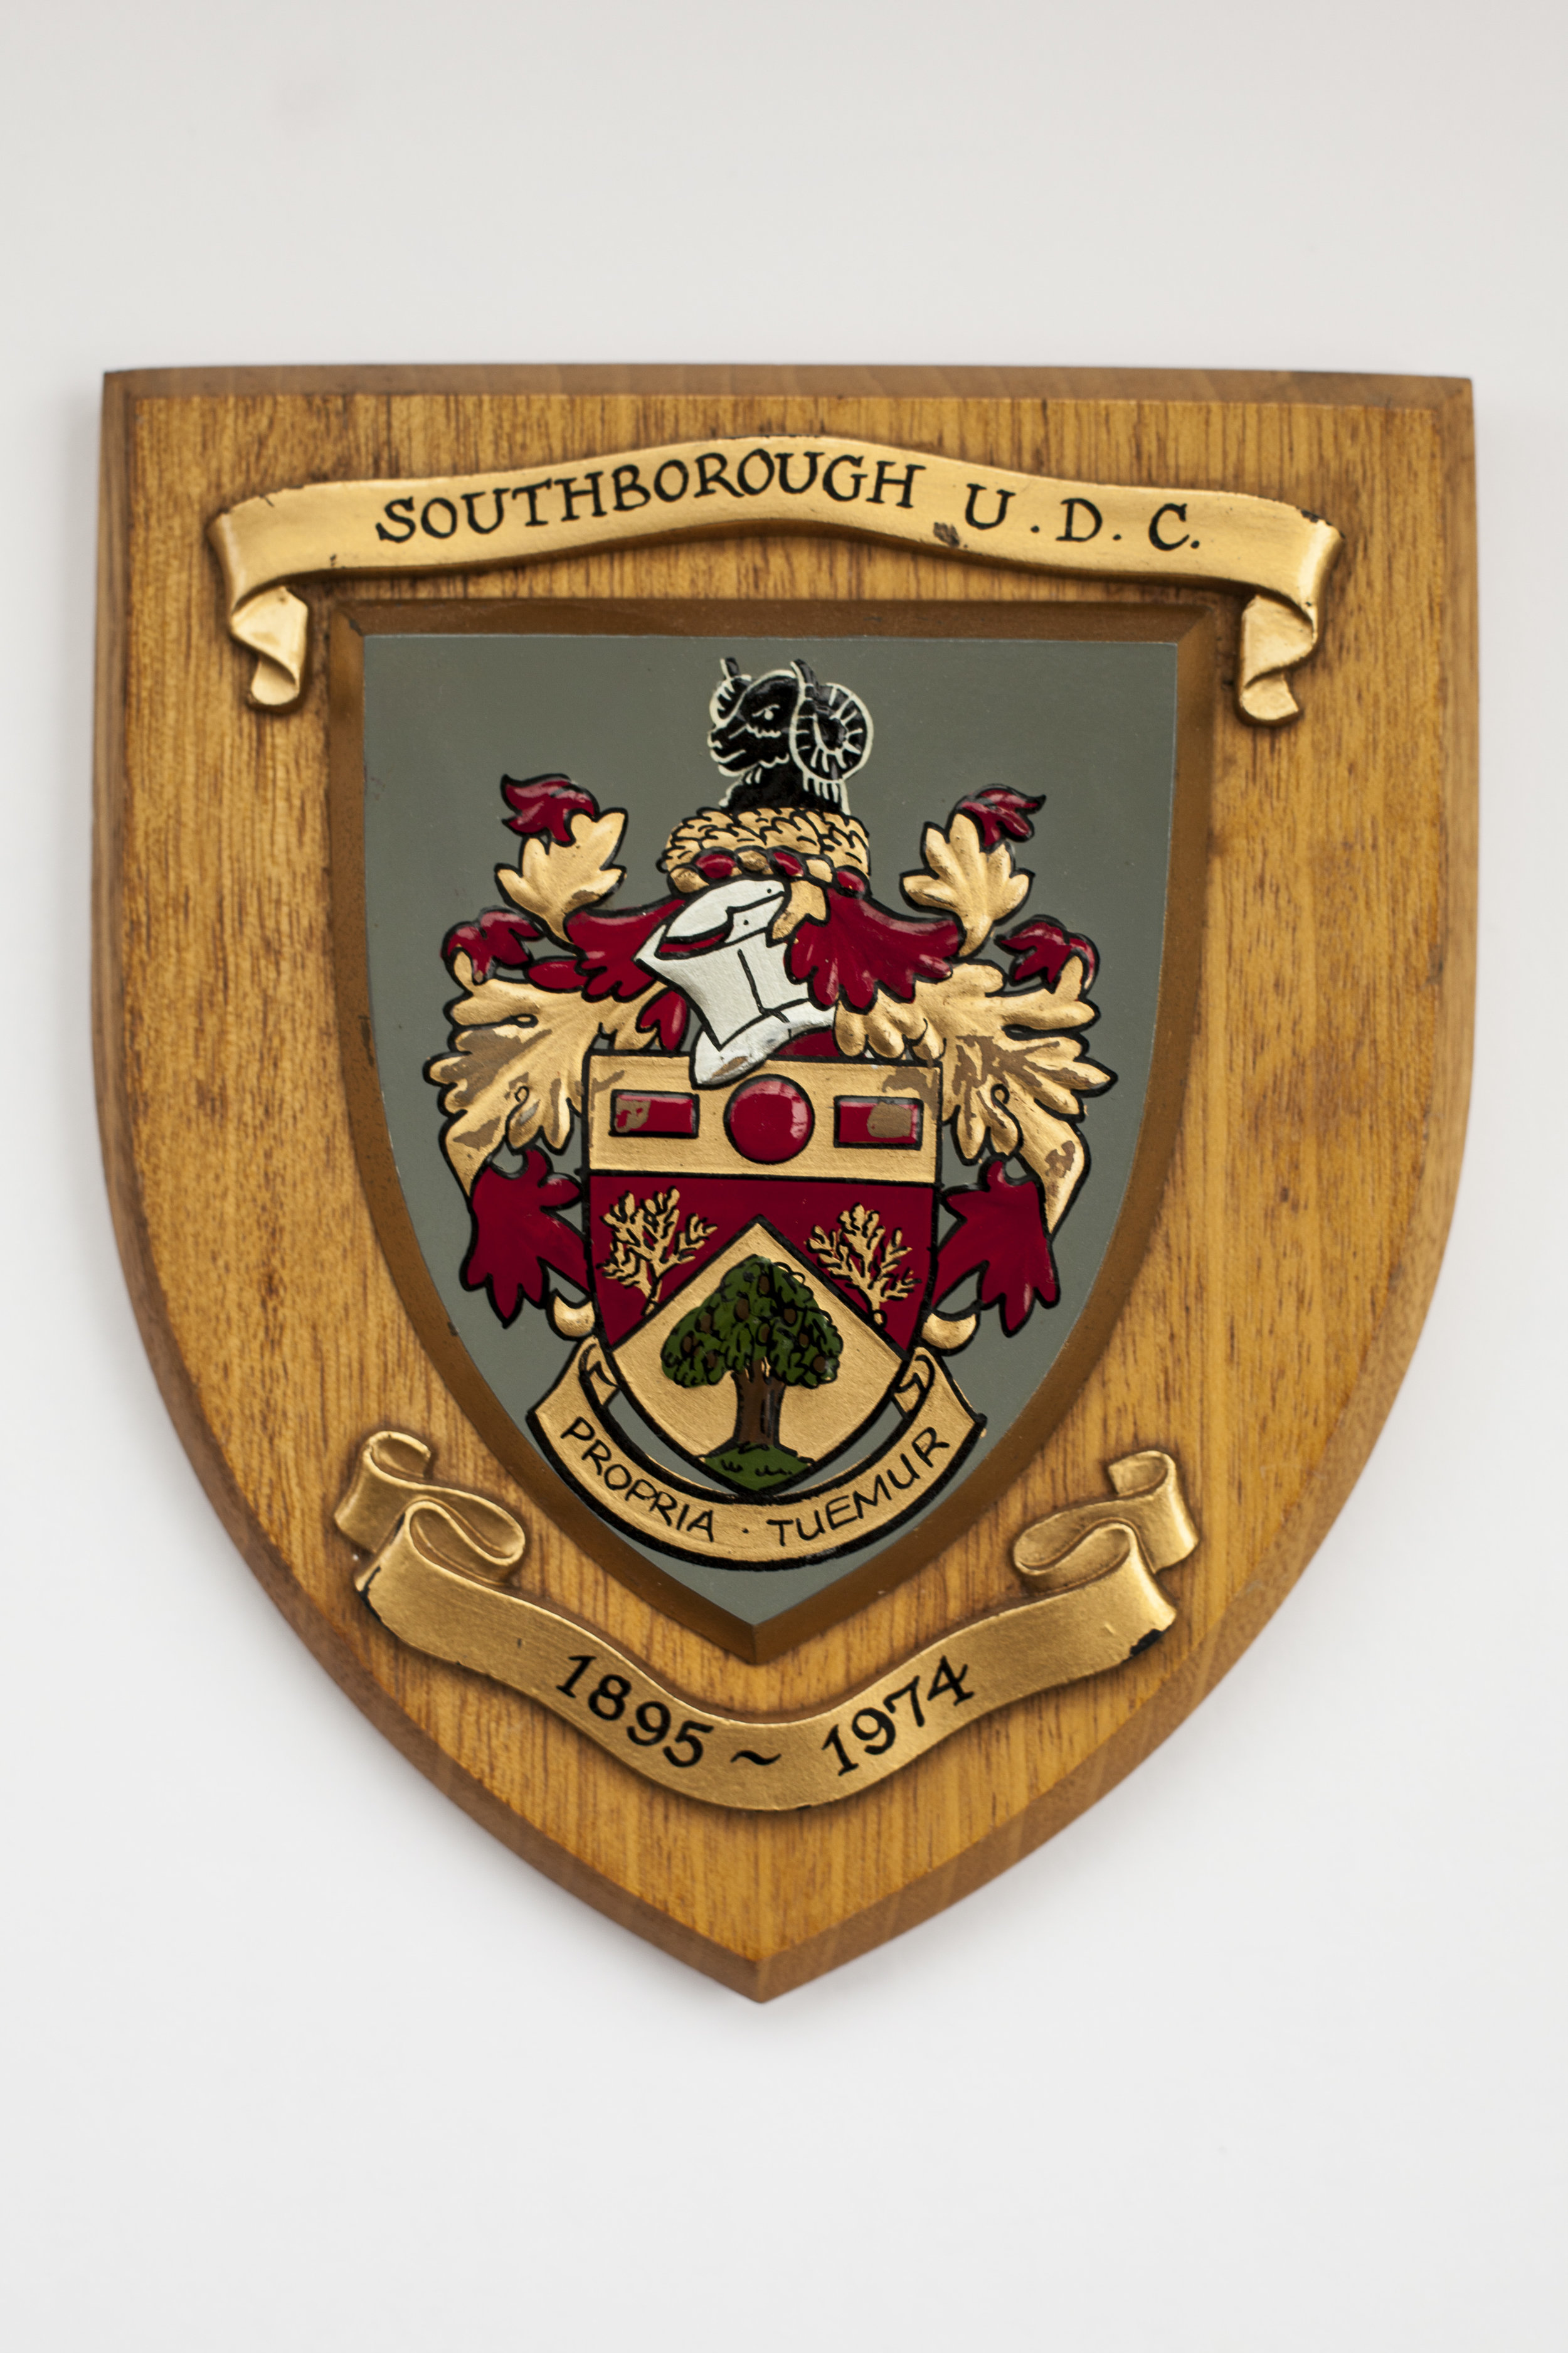 The shield with hand painted coat of arms given to all Council members and employees on the 31st of March, 1974 to mark the close of business of the Southborough Urban District Council.